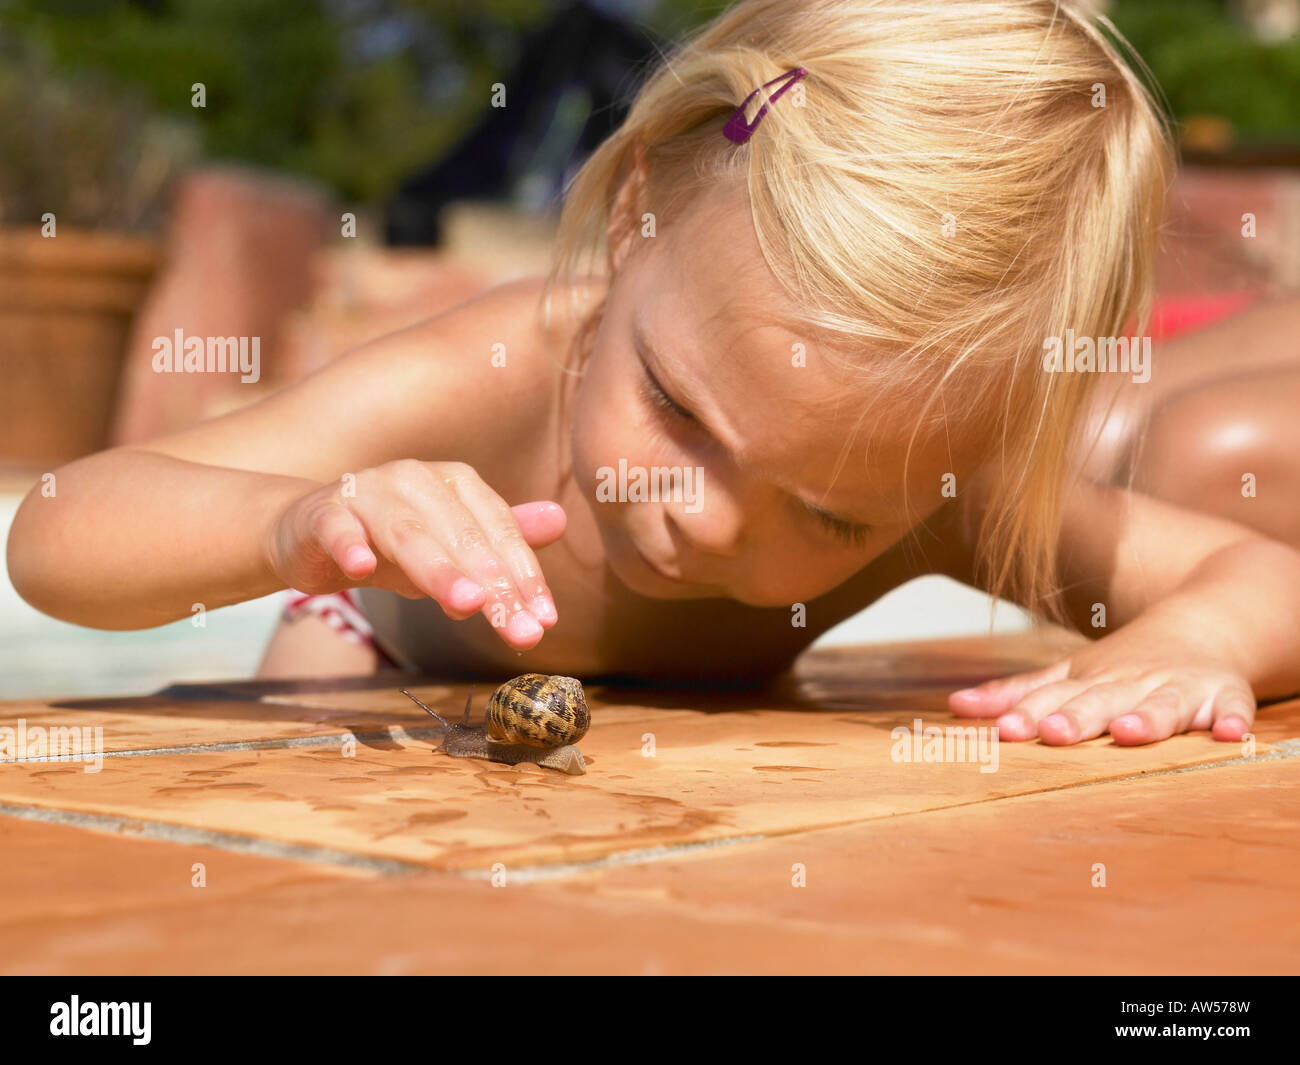 Little girl playing with a snail. Stock Photo